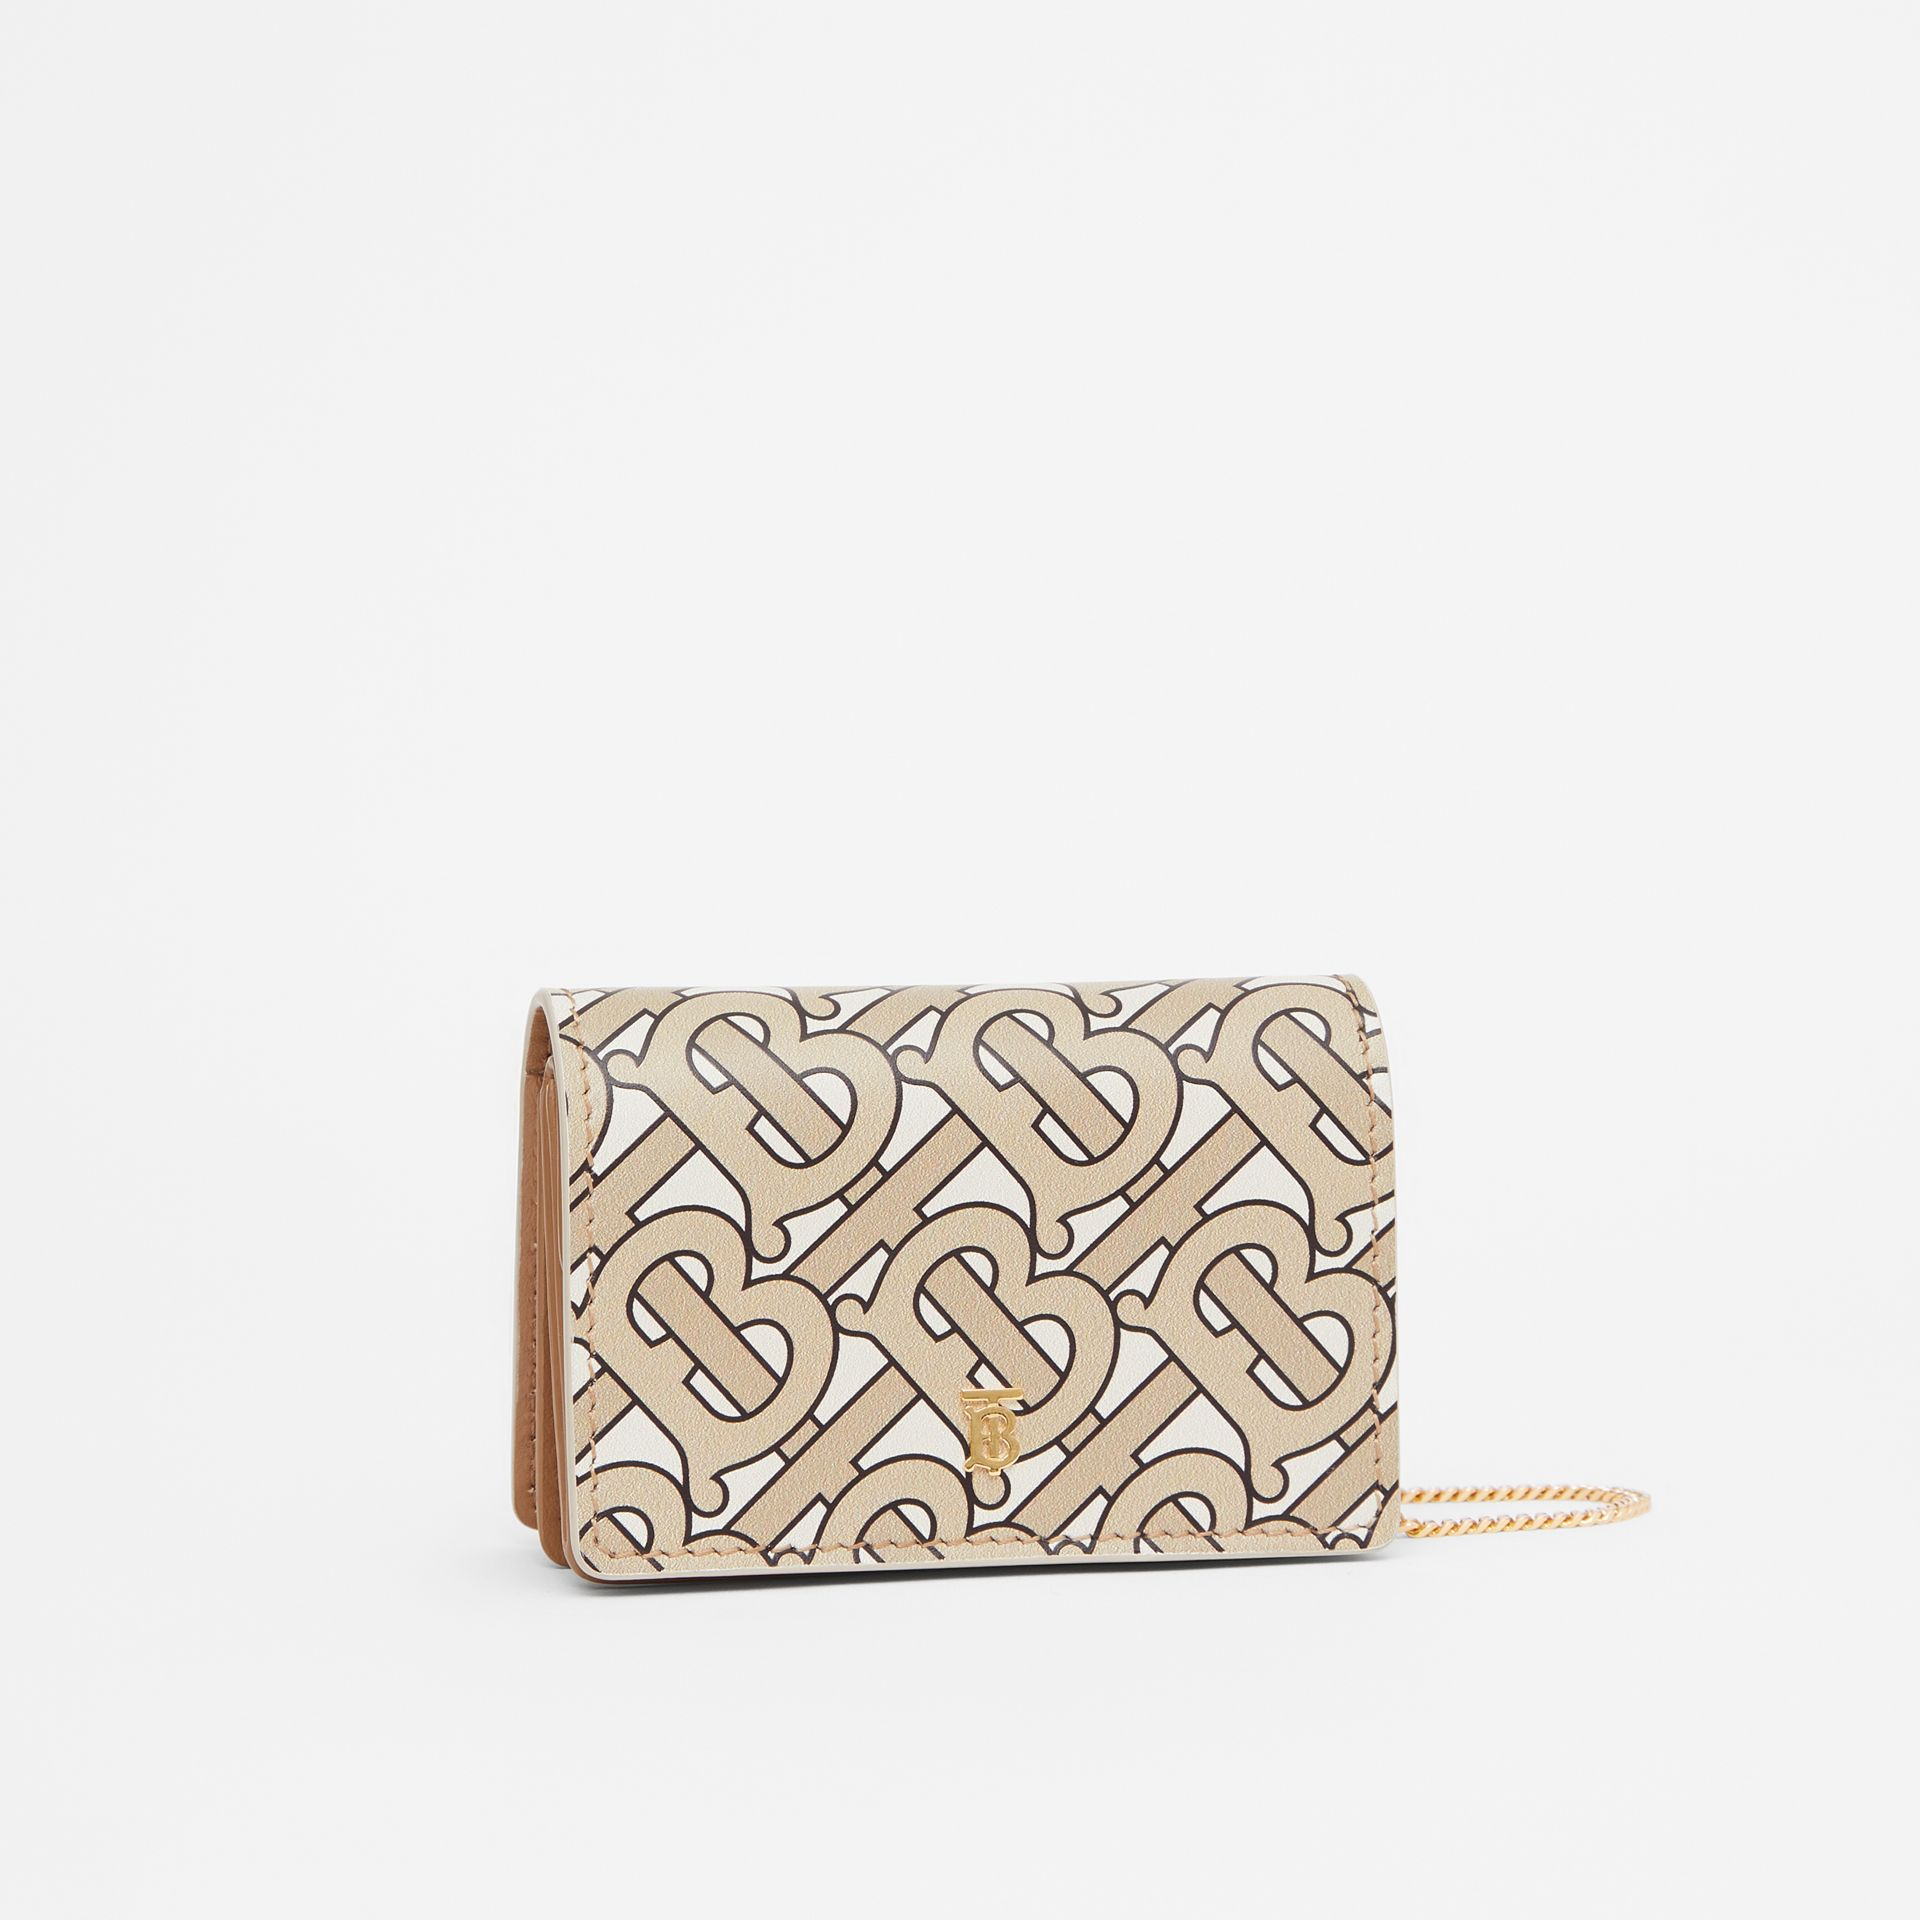 Monogram Print Card Case with Detachable Strap in Beige - Women | Burberry United States - gallery image 6